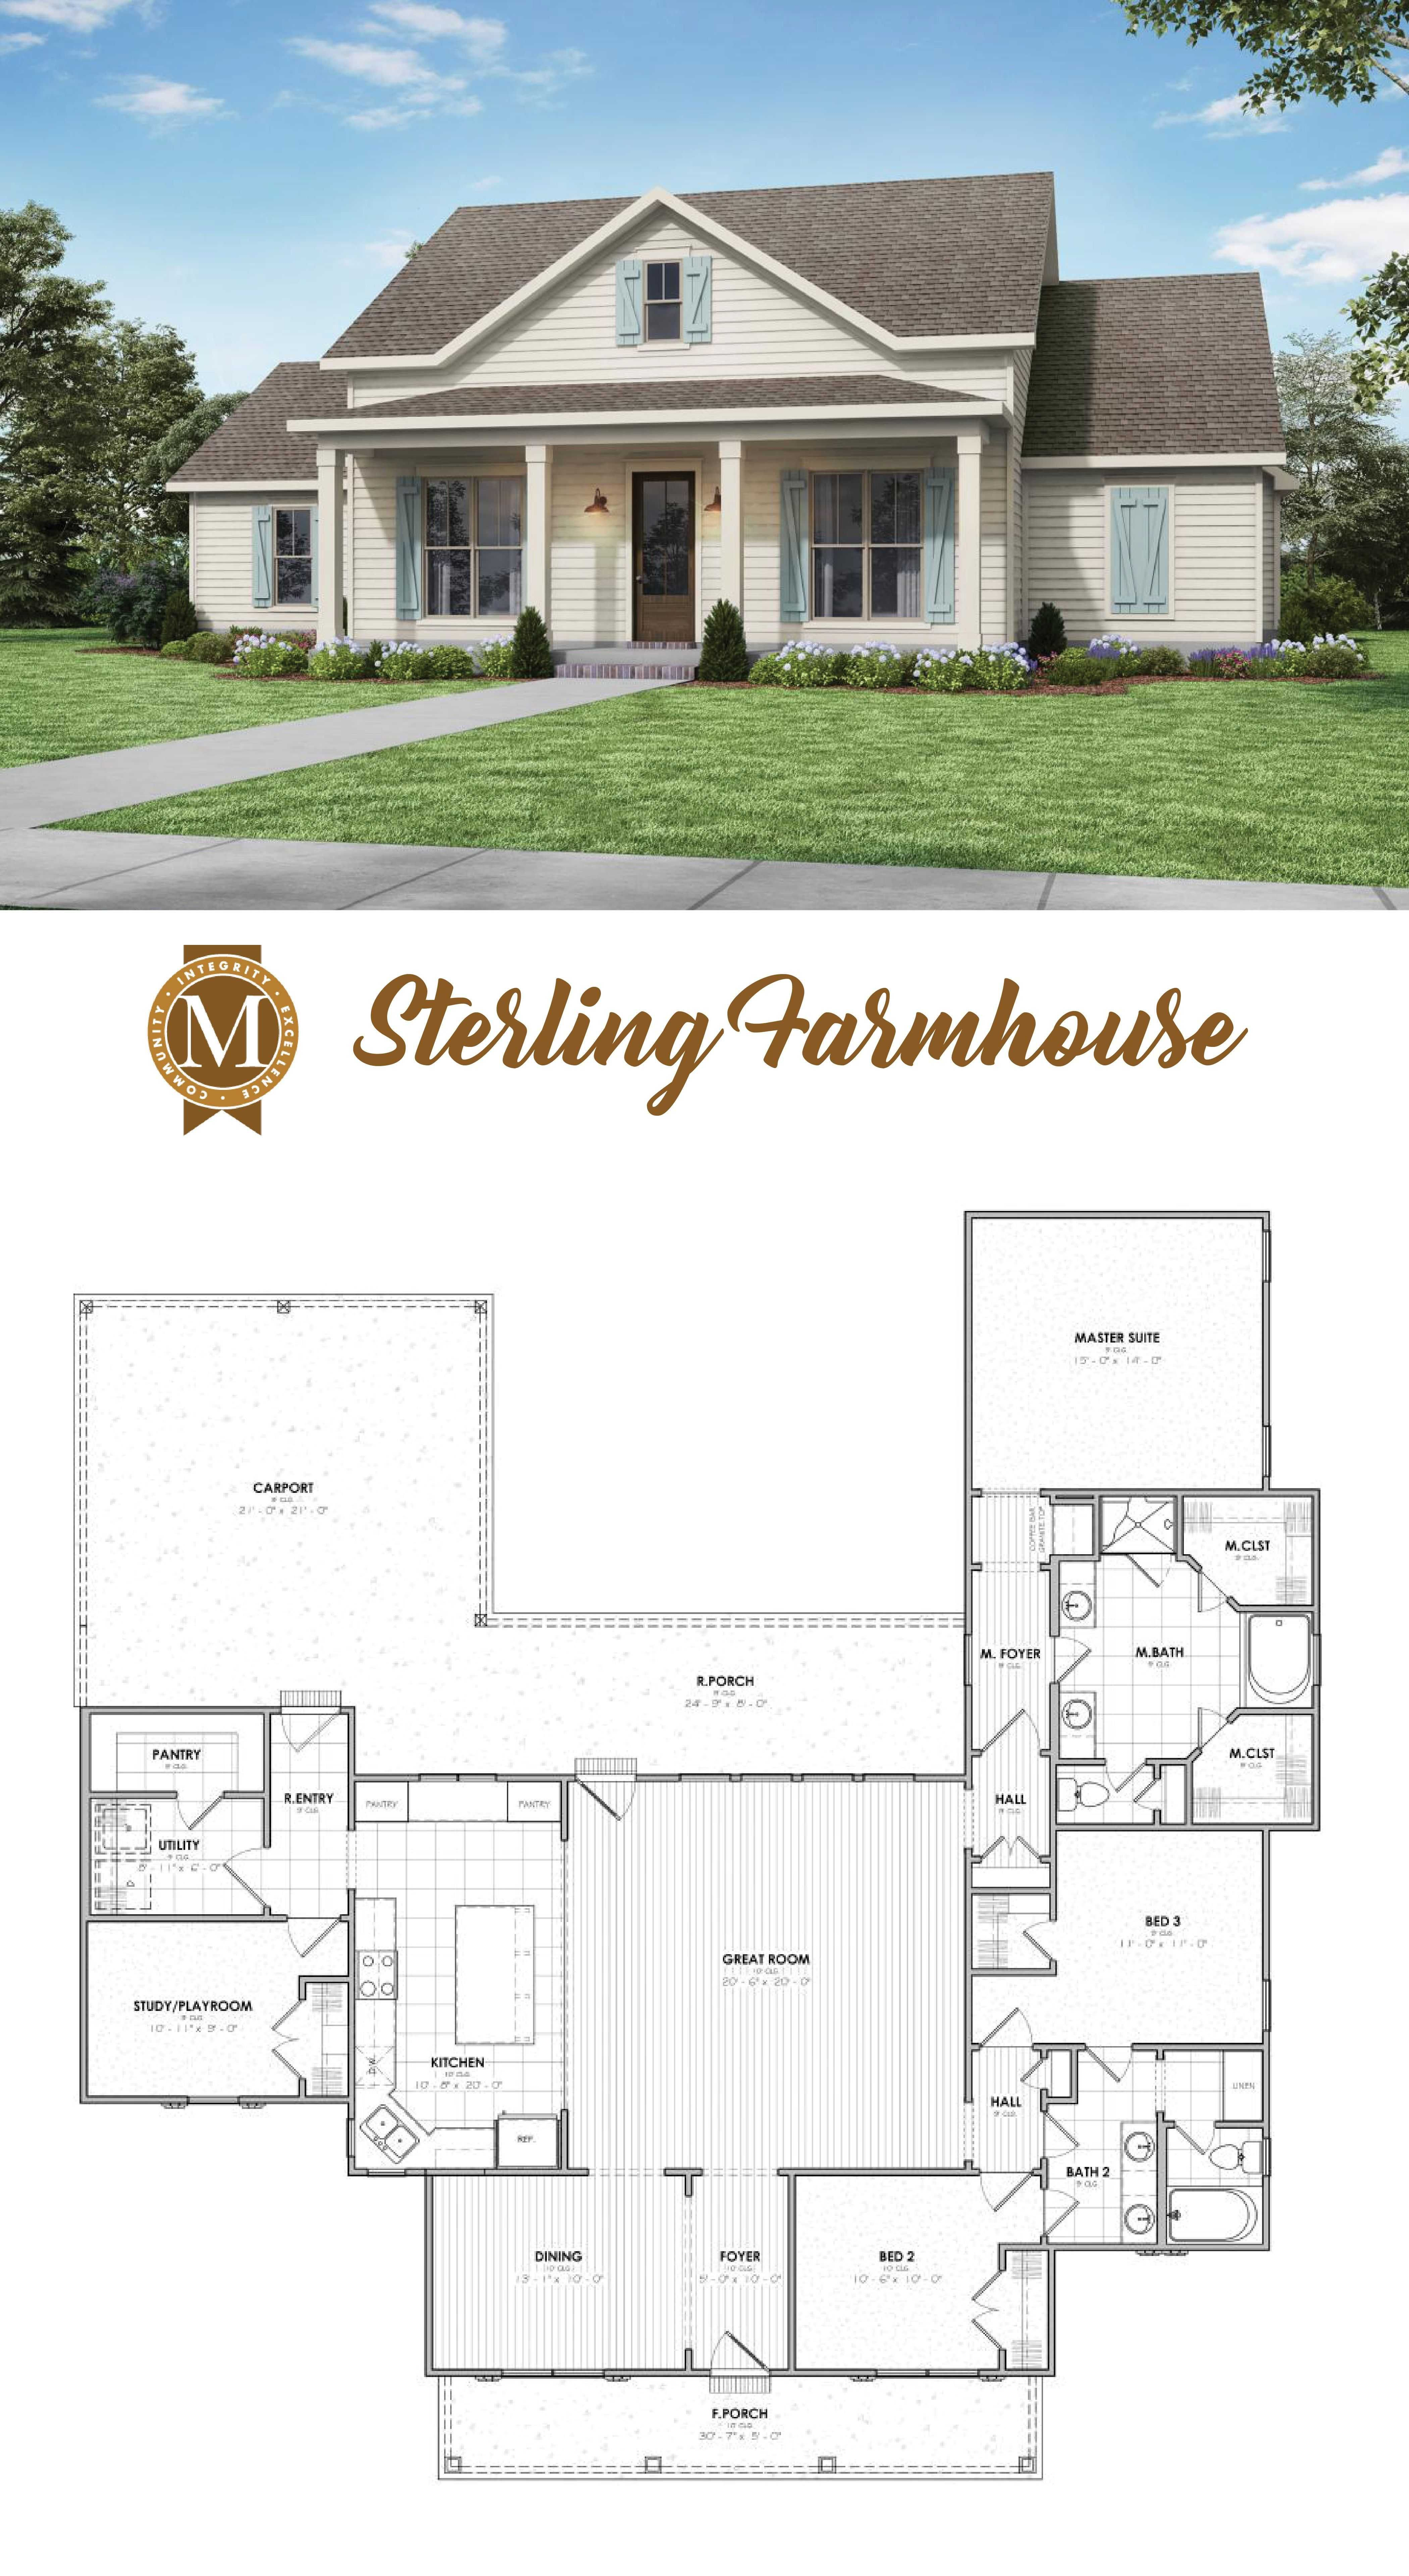 Open concept single story farmhouse plans new sterling ... on farmhouse floor plans, modern small house plans, simple two-story house floor plans, and a half story house plans, farmhouse design plans, ranch house plans, 1.5 story house plans, single story open floor plans, simple 2 story farmhouse plans, simple farmhouse house plans, old 2 story farmhouse plans, classic farmhouse house plans, country farmhouse porch home plans, single level farmhouse plans, single story mediterranean home plans, farmhouse southern living house plans, rural farmhouse plans, texas single story farmhouse plans, best one story house plans, open-concept farmhouse plans,